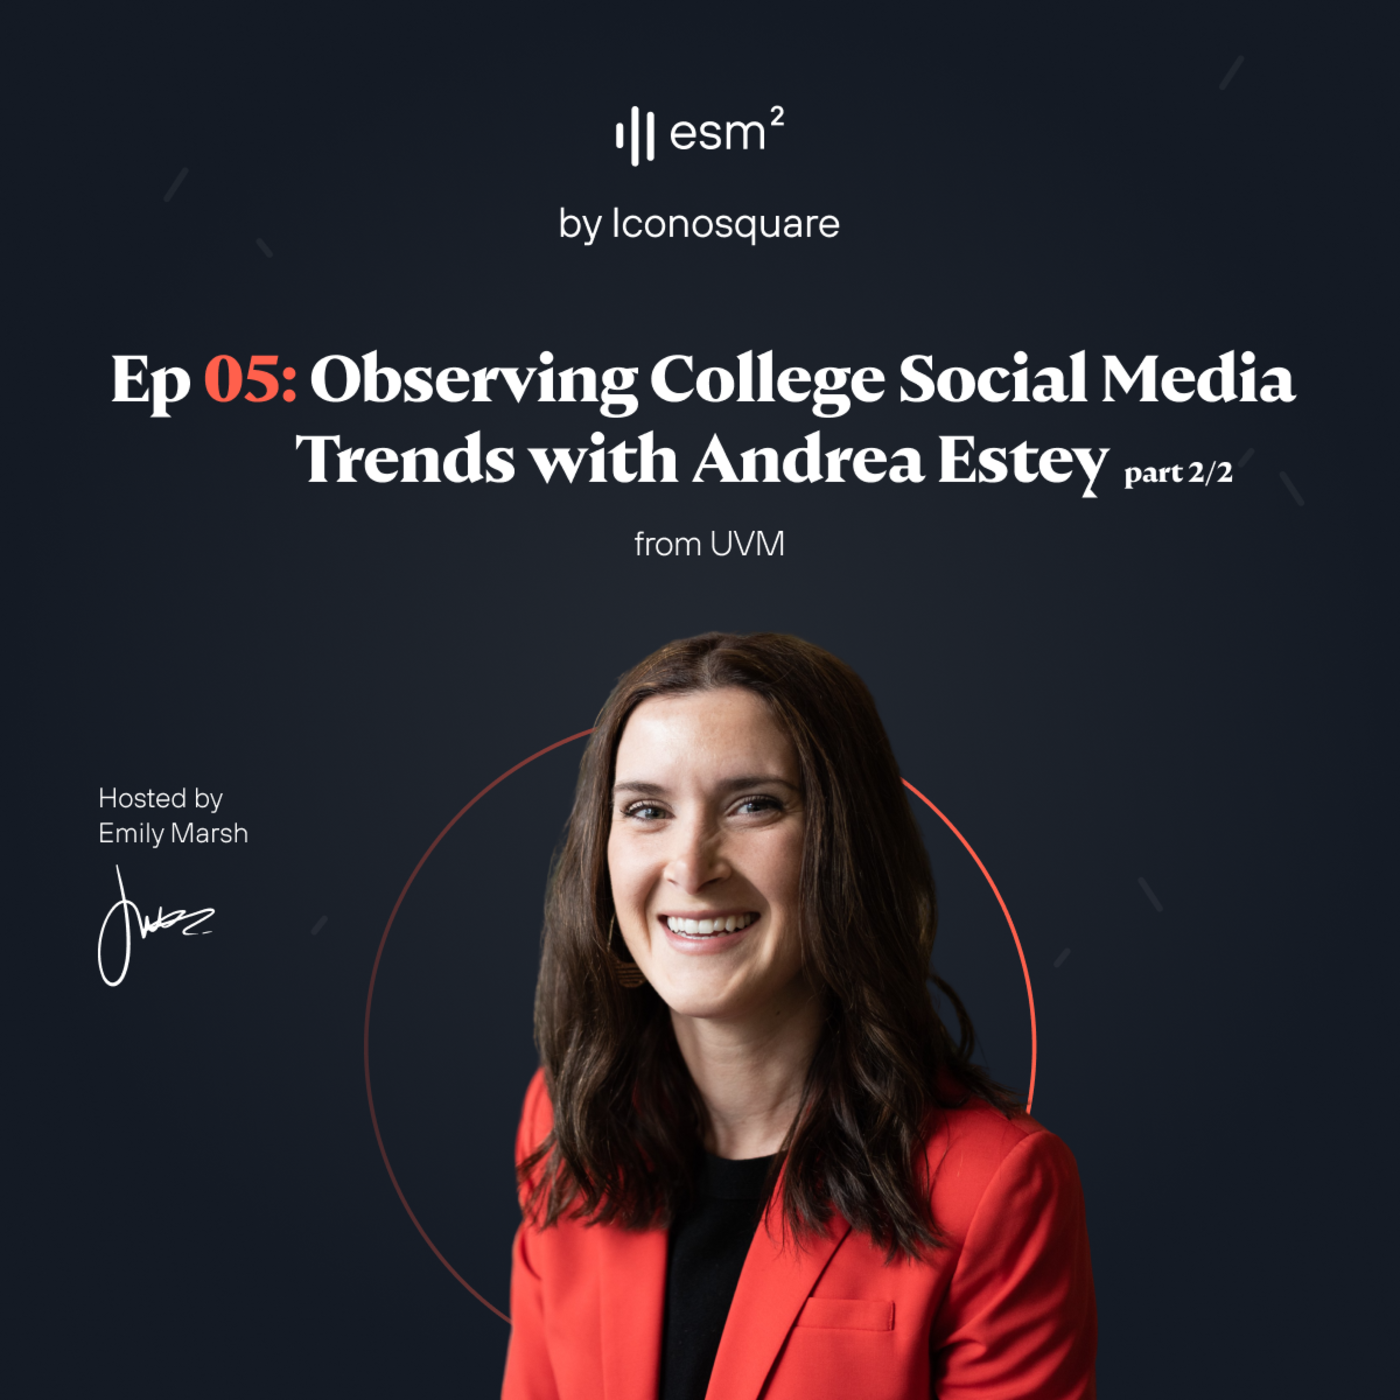 """""""Observing the new social media trends of college students"""" - Andrea Estey from UVM (Part 2 of 2)"""